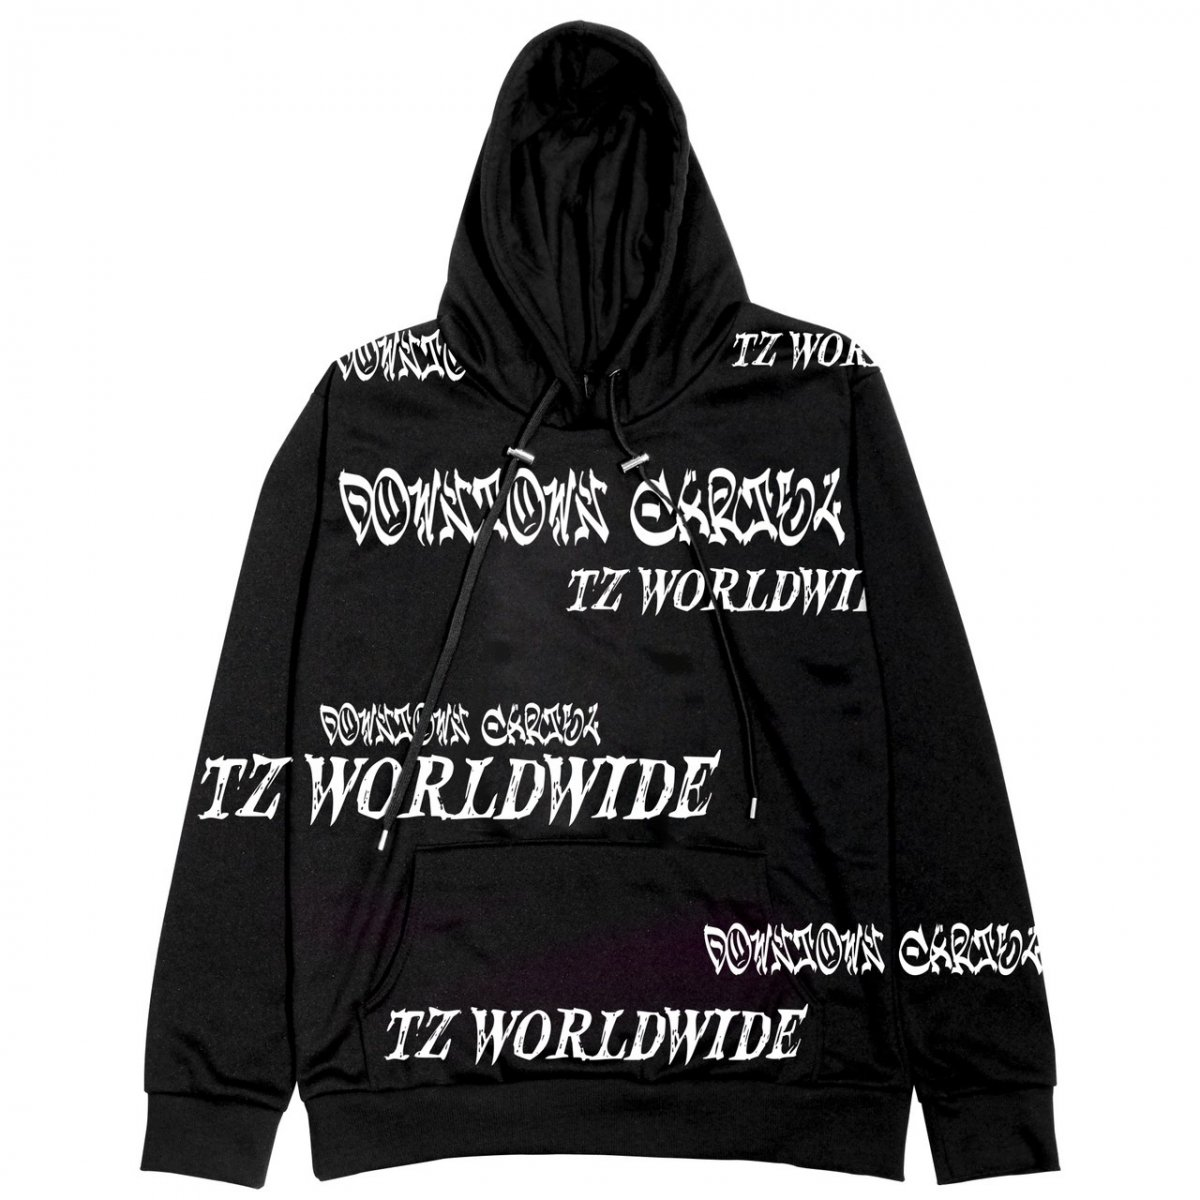 DOWNTOWN CARTEL×TZ Worldwide Collaboration Hoodie